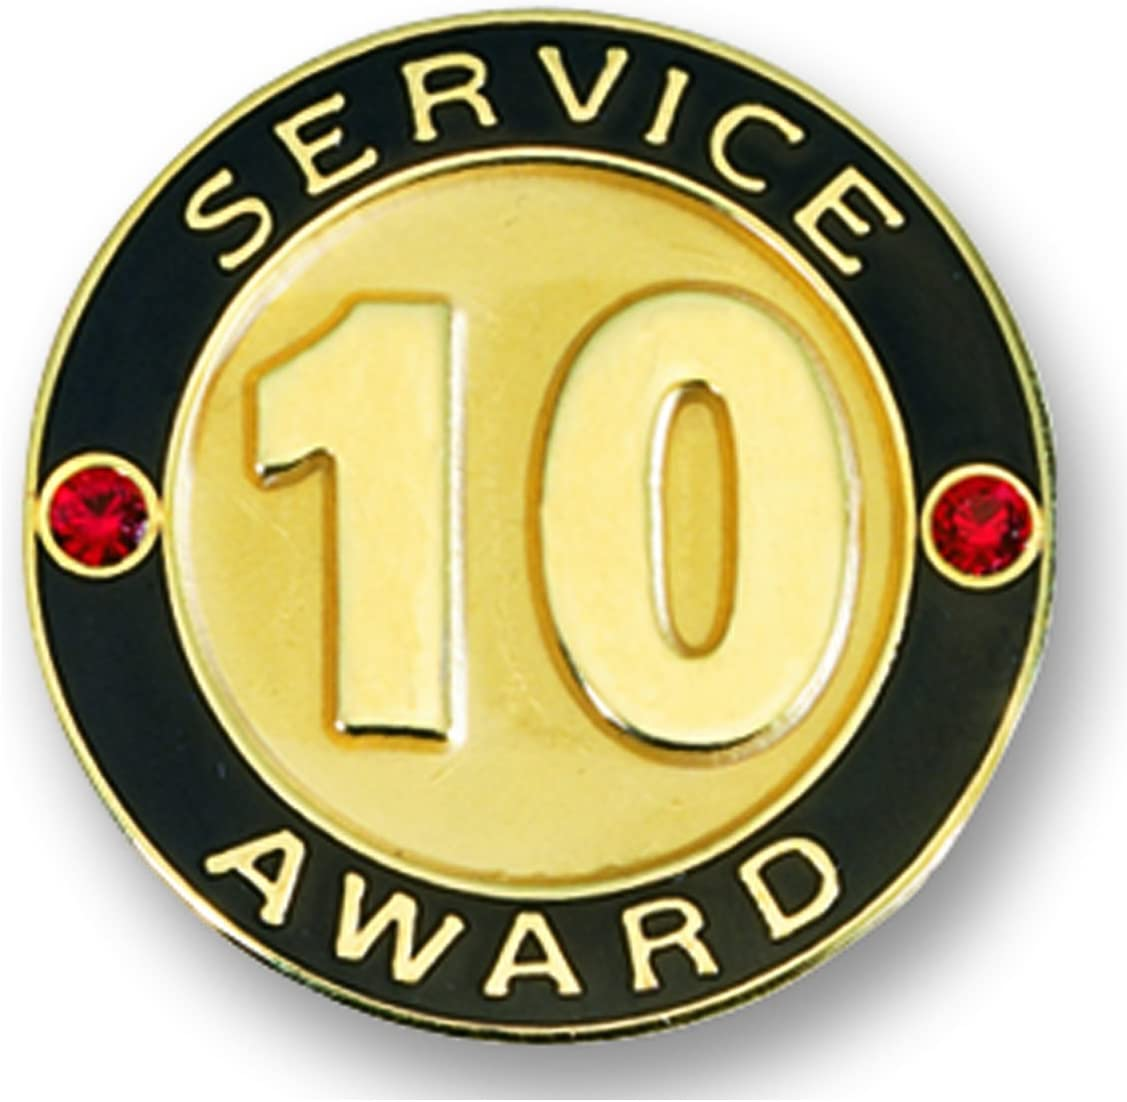 TCDesignerProducts 10 Year Service Gold Award Pin with Red Stones, 6 Pins